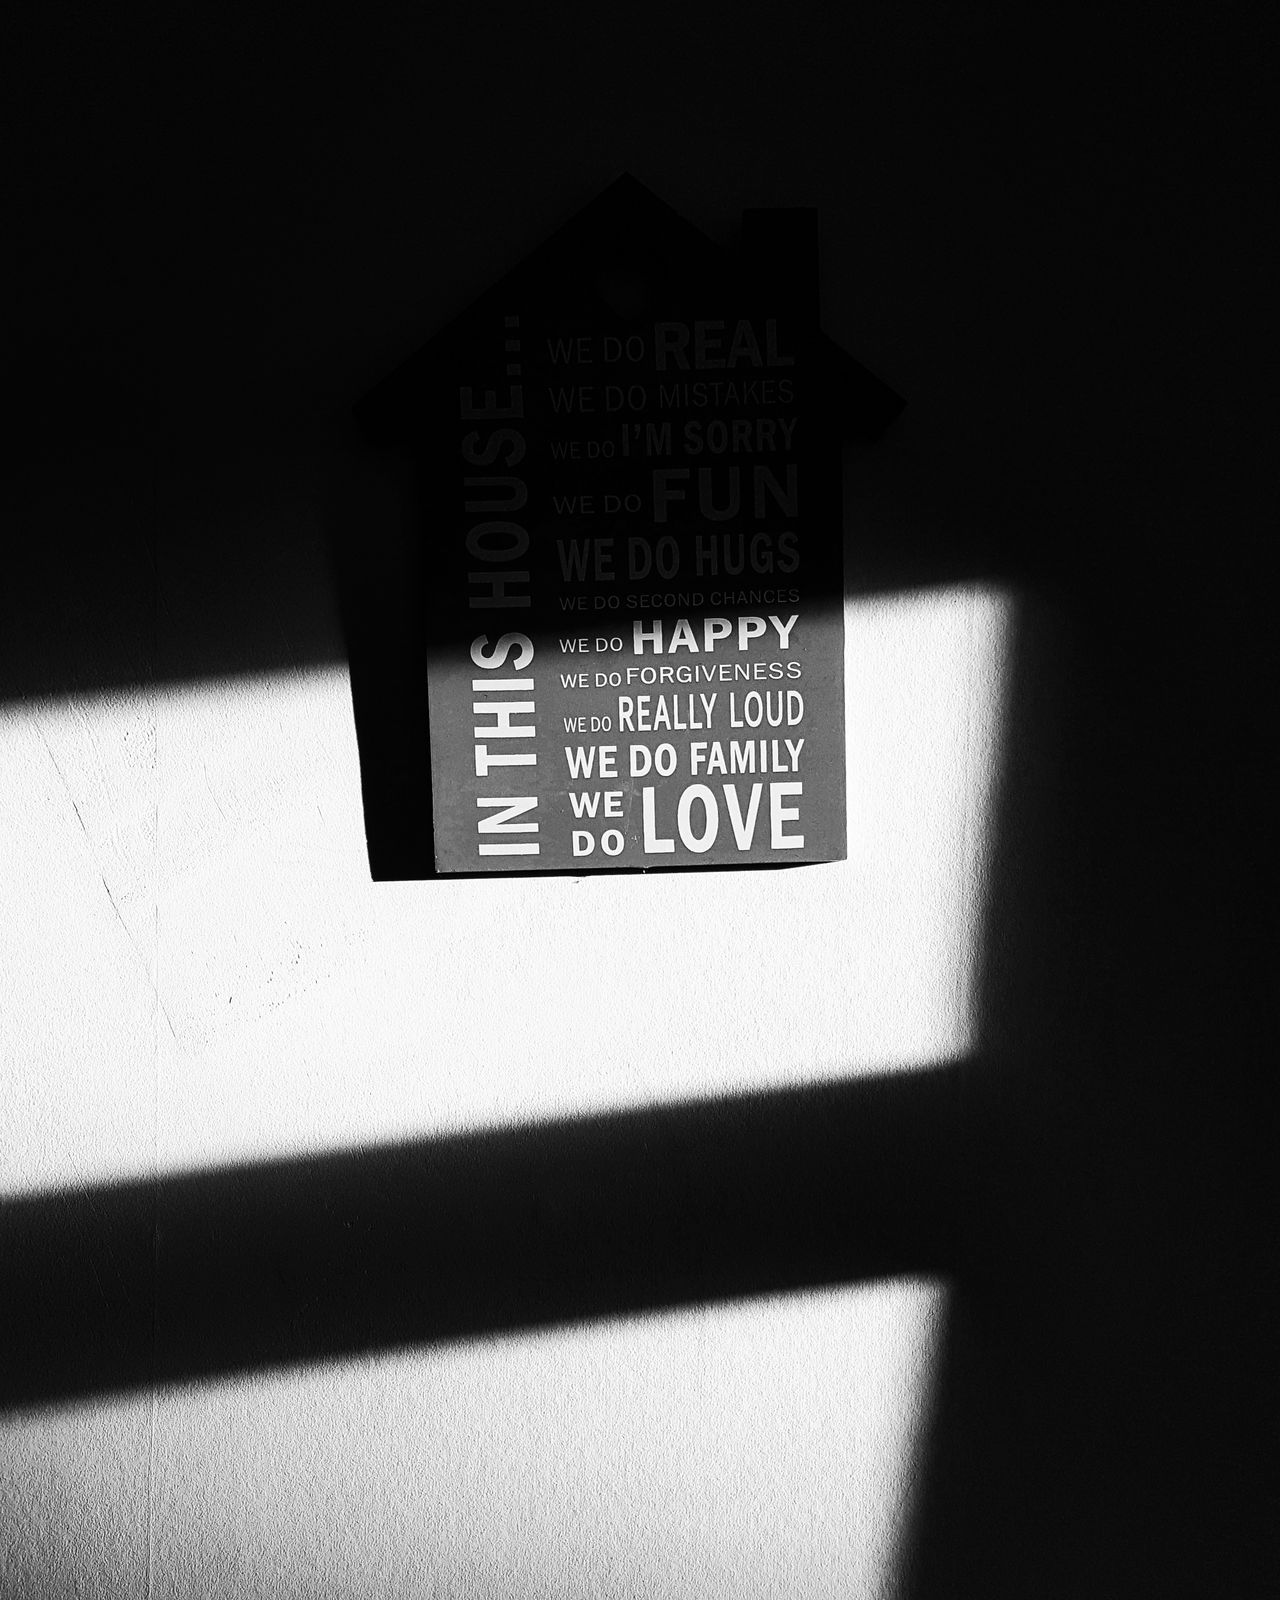 """Home"" Shadow Text Indoors  No People Family Retro Styled Camera - Photographic Equipment Blackandwhiteworld Photography Themes Film Industry White Background Abstract Photography Blackandwhite Photography Black & White Blackandwhitephoto Blackandwhite World Close-up Indoors"